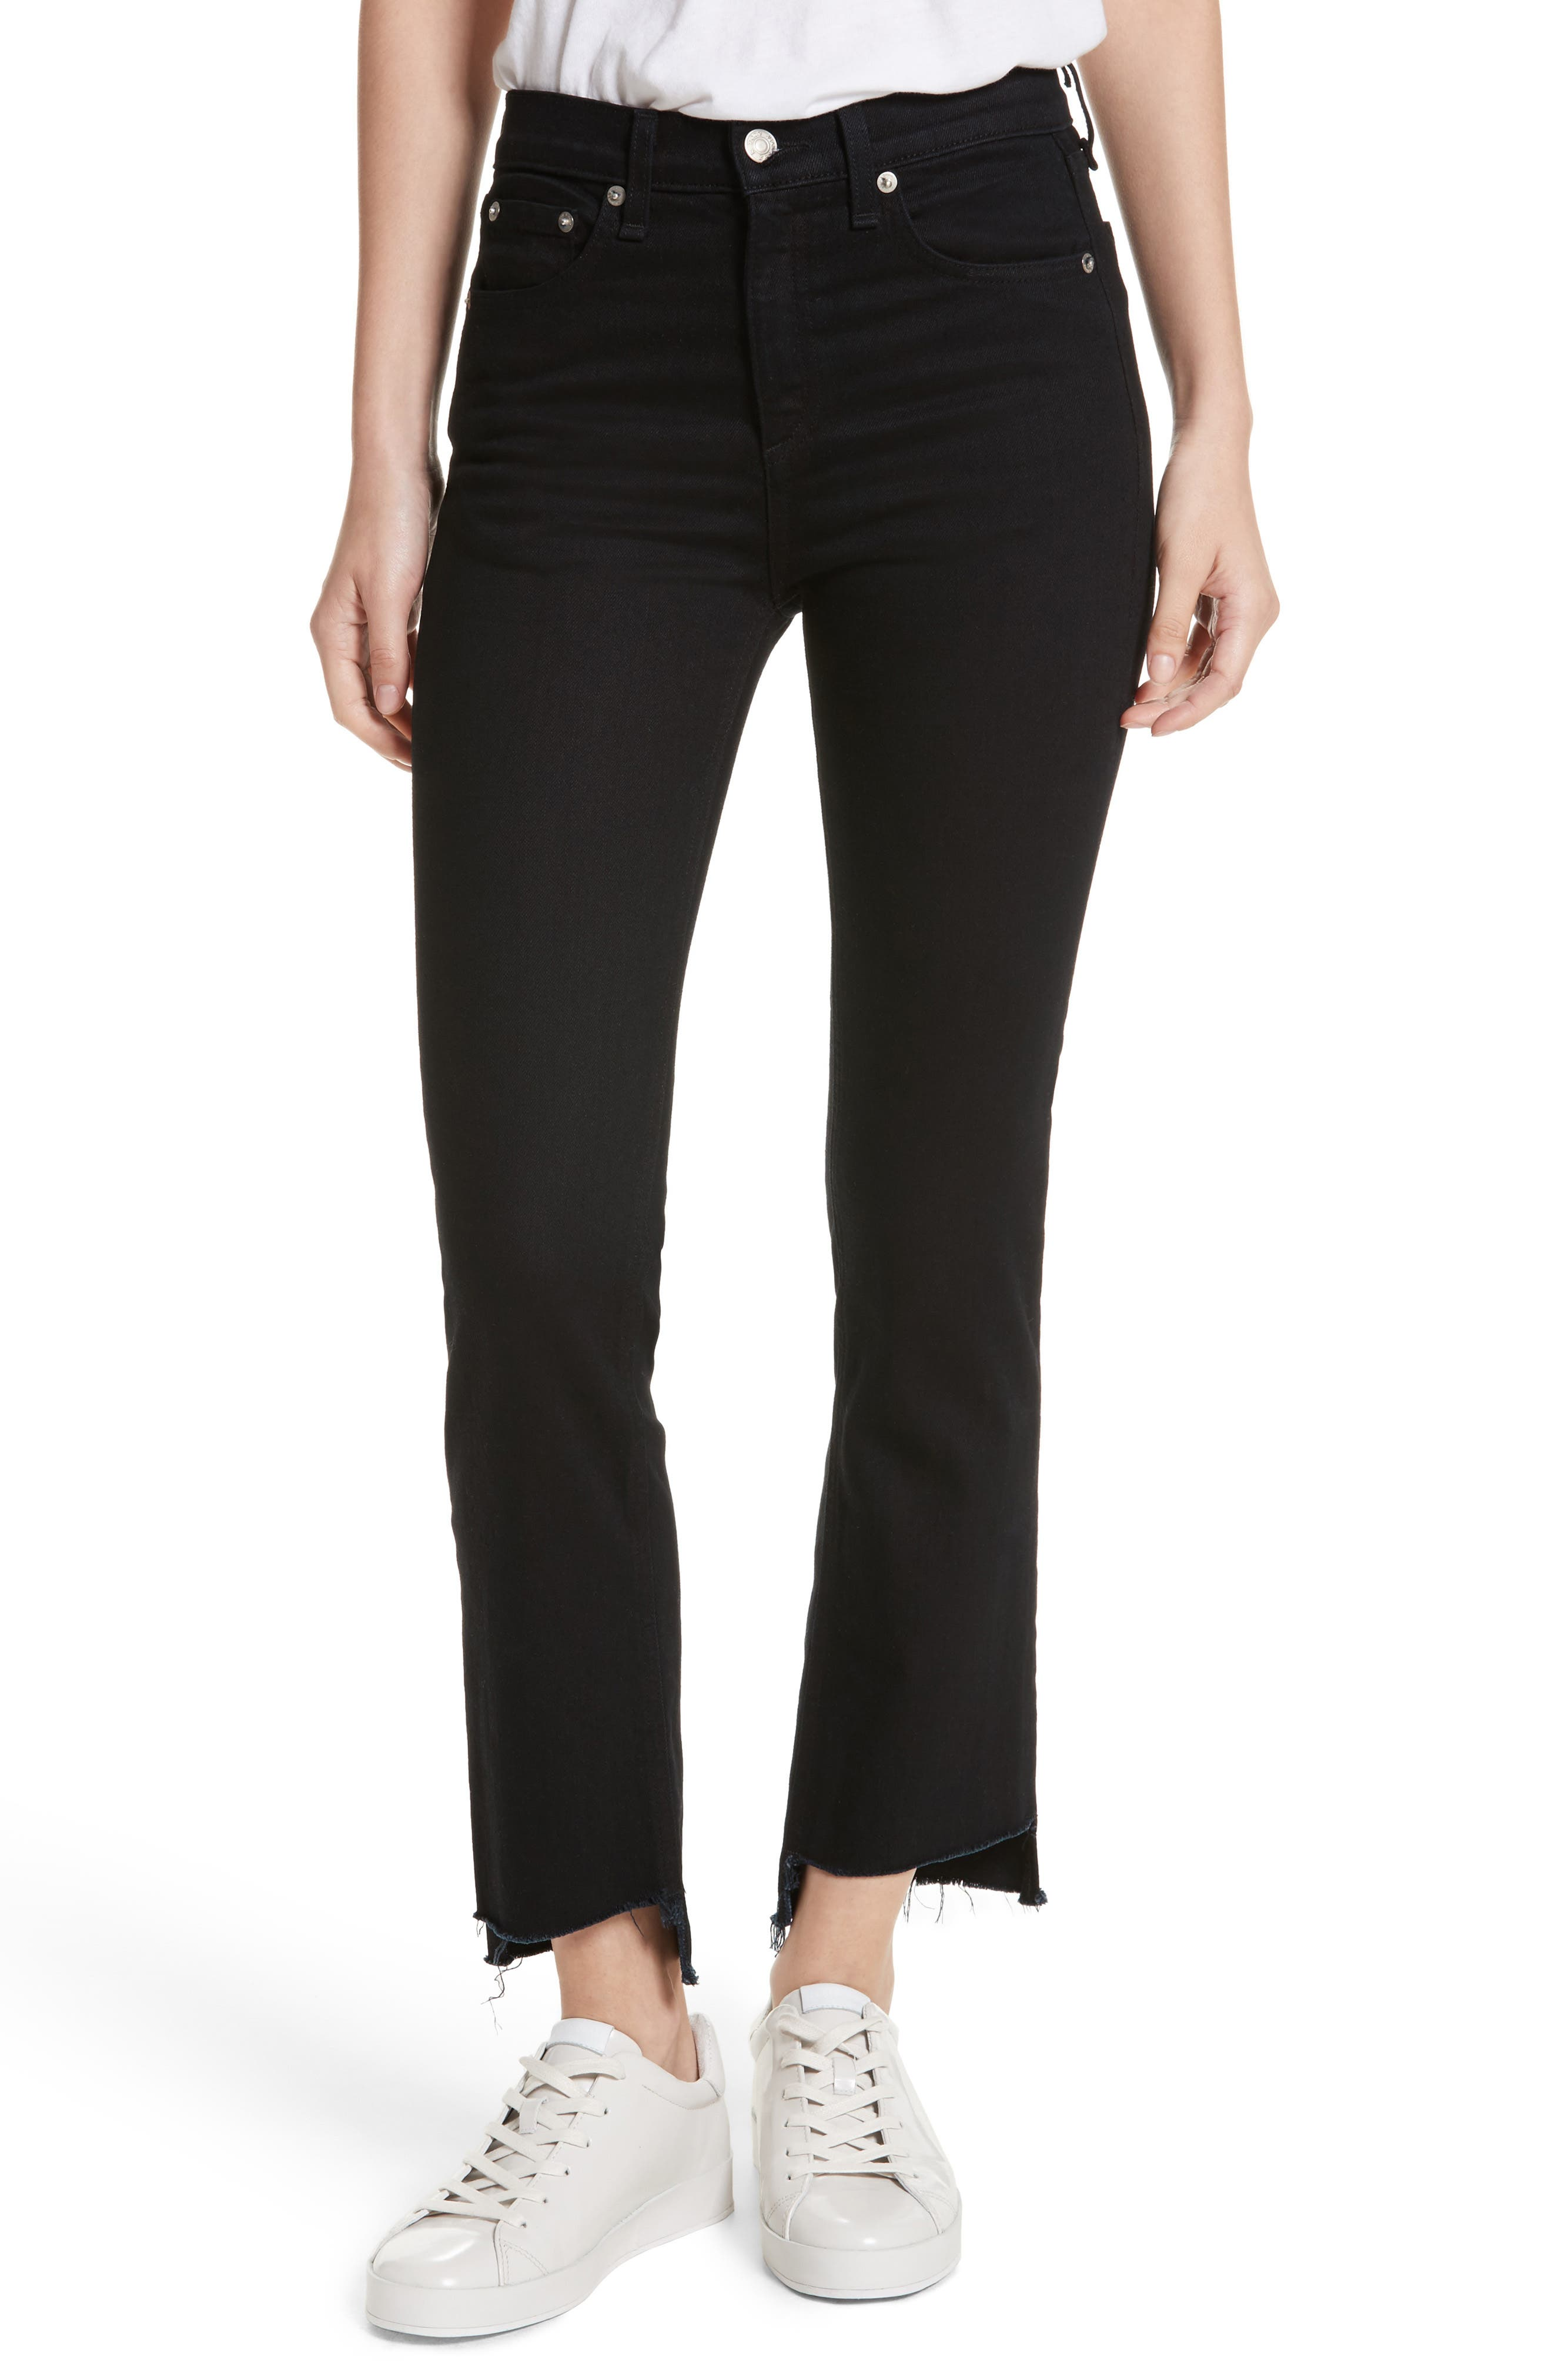 Alternate Image 1 Selected - rag & bone/JEAN High Waist Stovepipe Jeans (Byan)